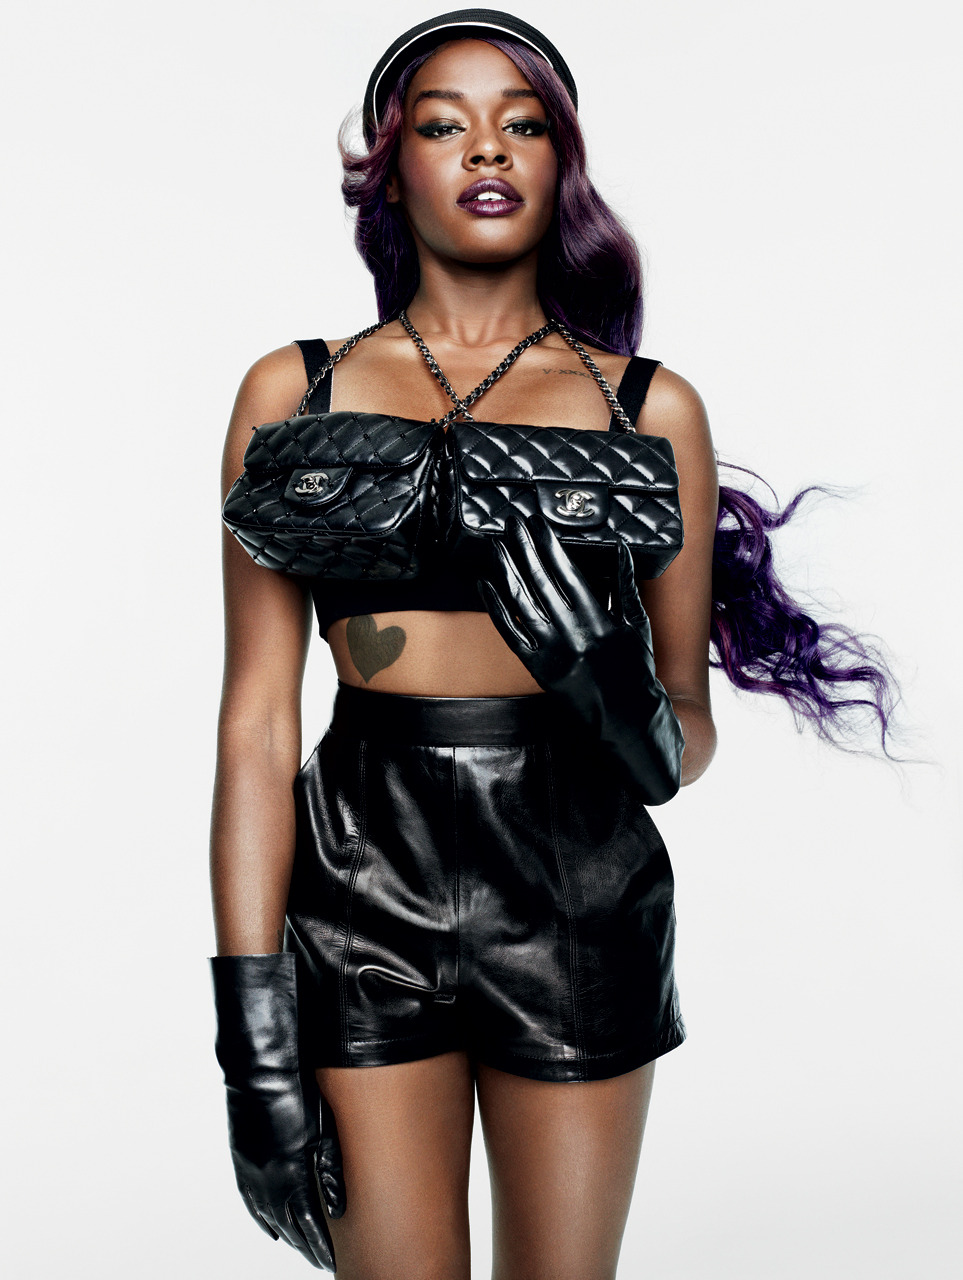 bohemea:  Azealia Banks: Girls of Now - V #80 by Sharif Hamza, Winter 2012